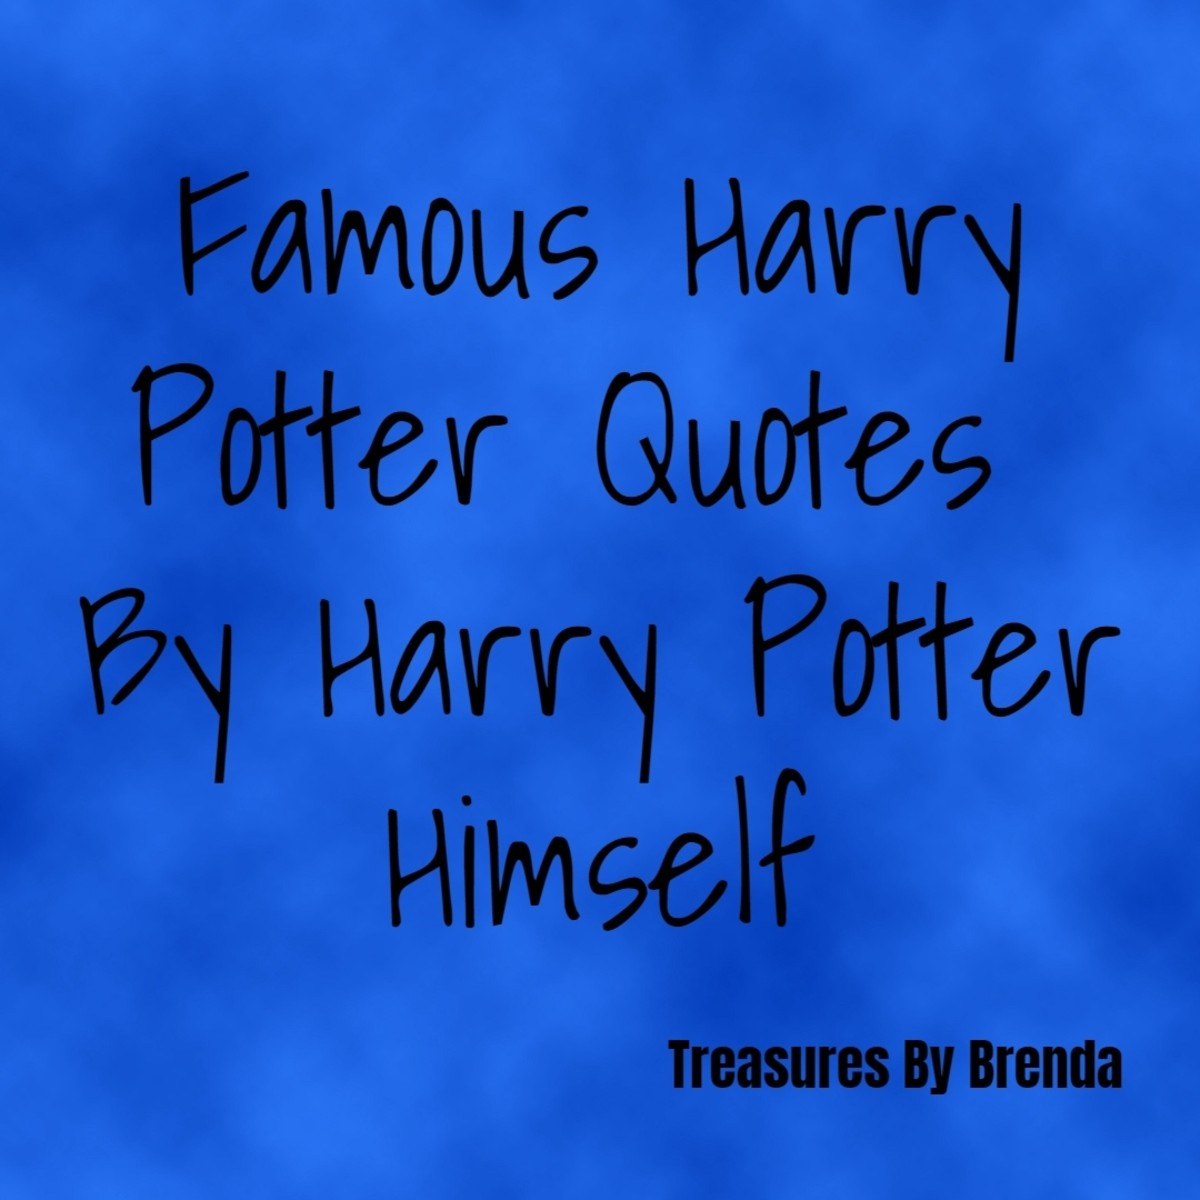 Famous Harry Potter Quotes (By Harry Potter Himself)